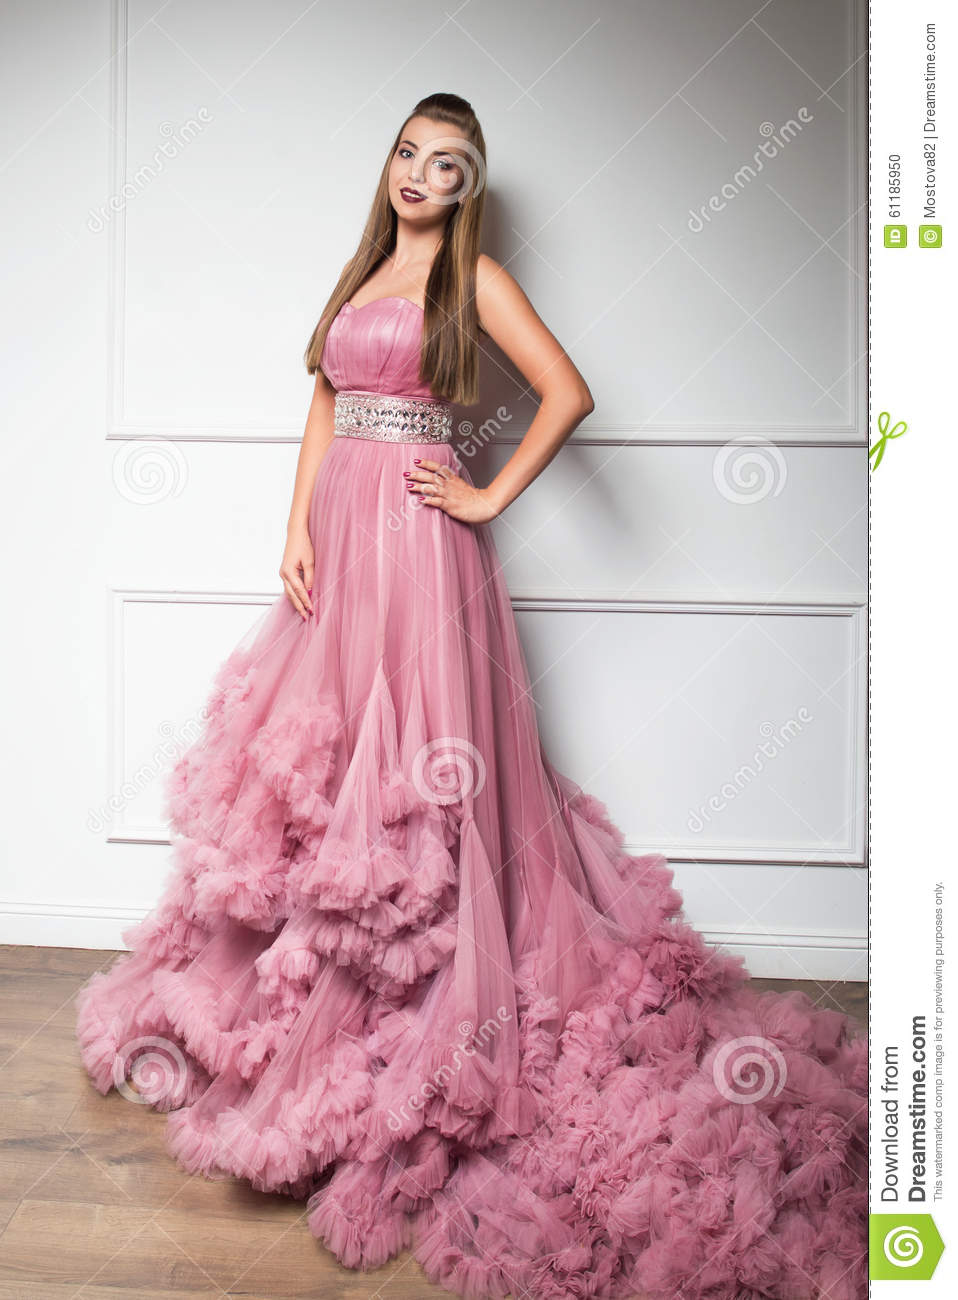 aa305d271 Portrait Of Young Beautiful Girl In Long Pink Dress Stock Photo ...